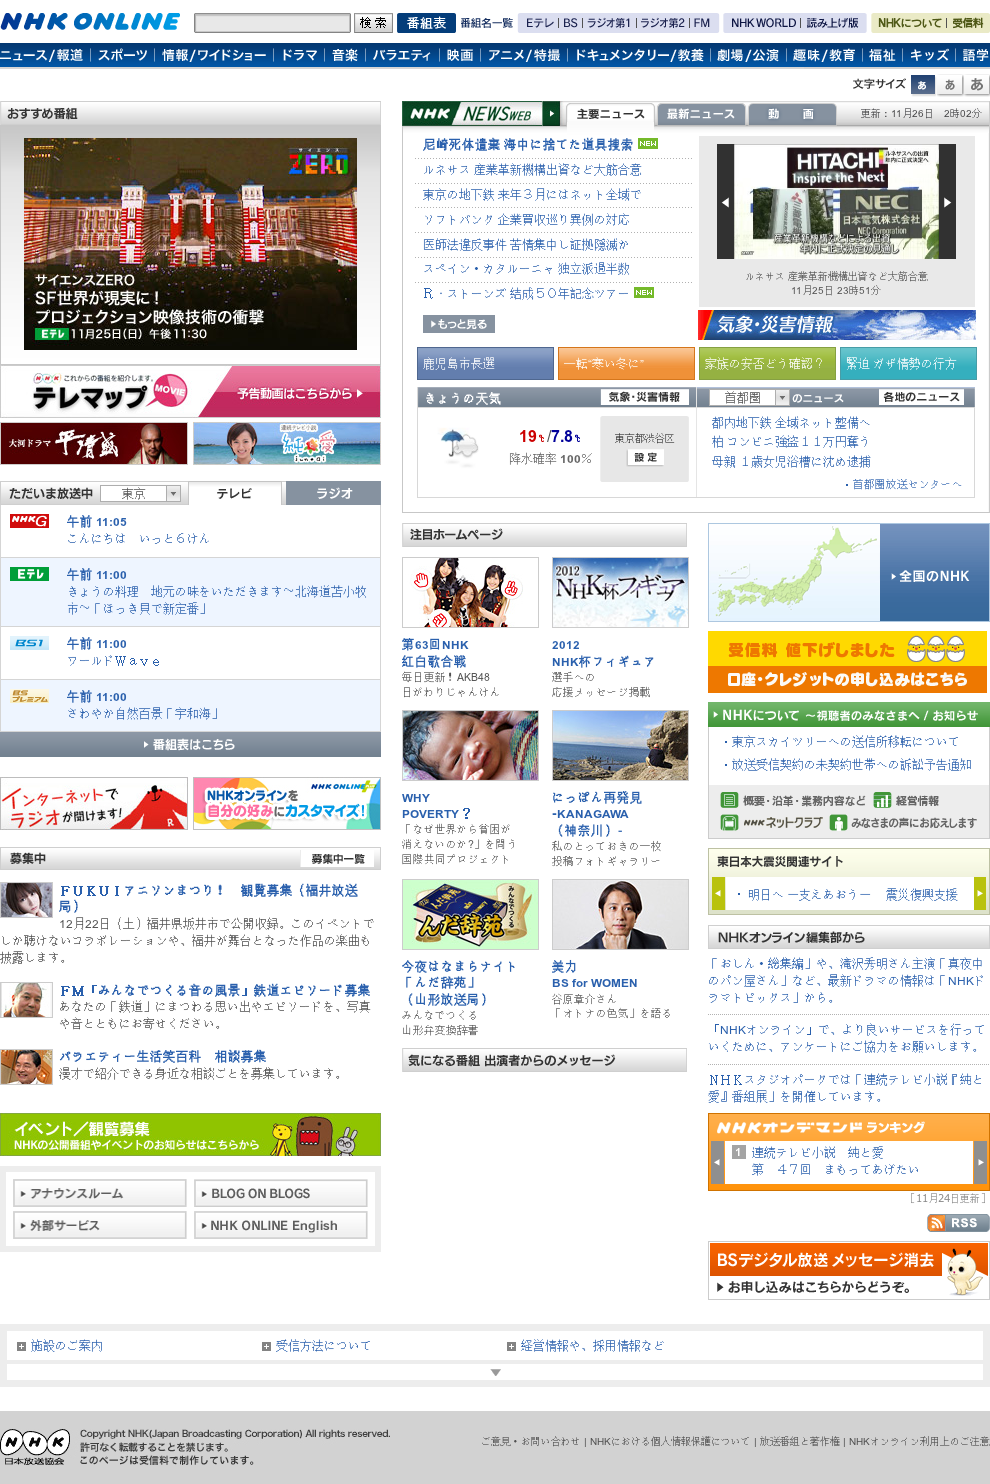 NHK Online at Monday Nov. 26, 2012, 2:20 a.m. UTC